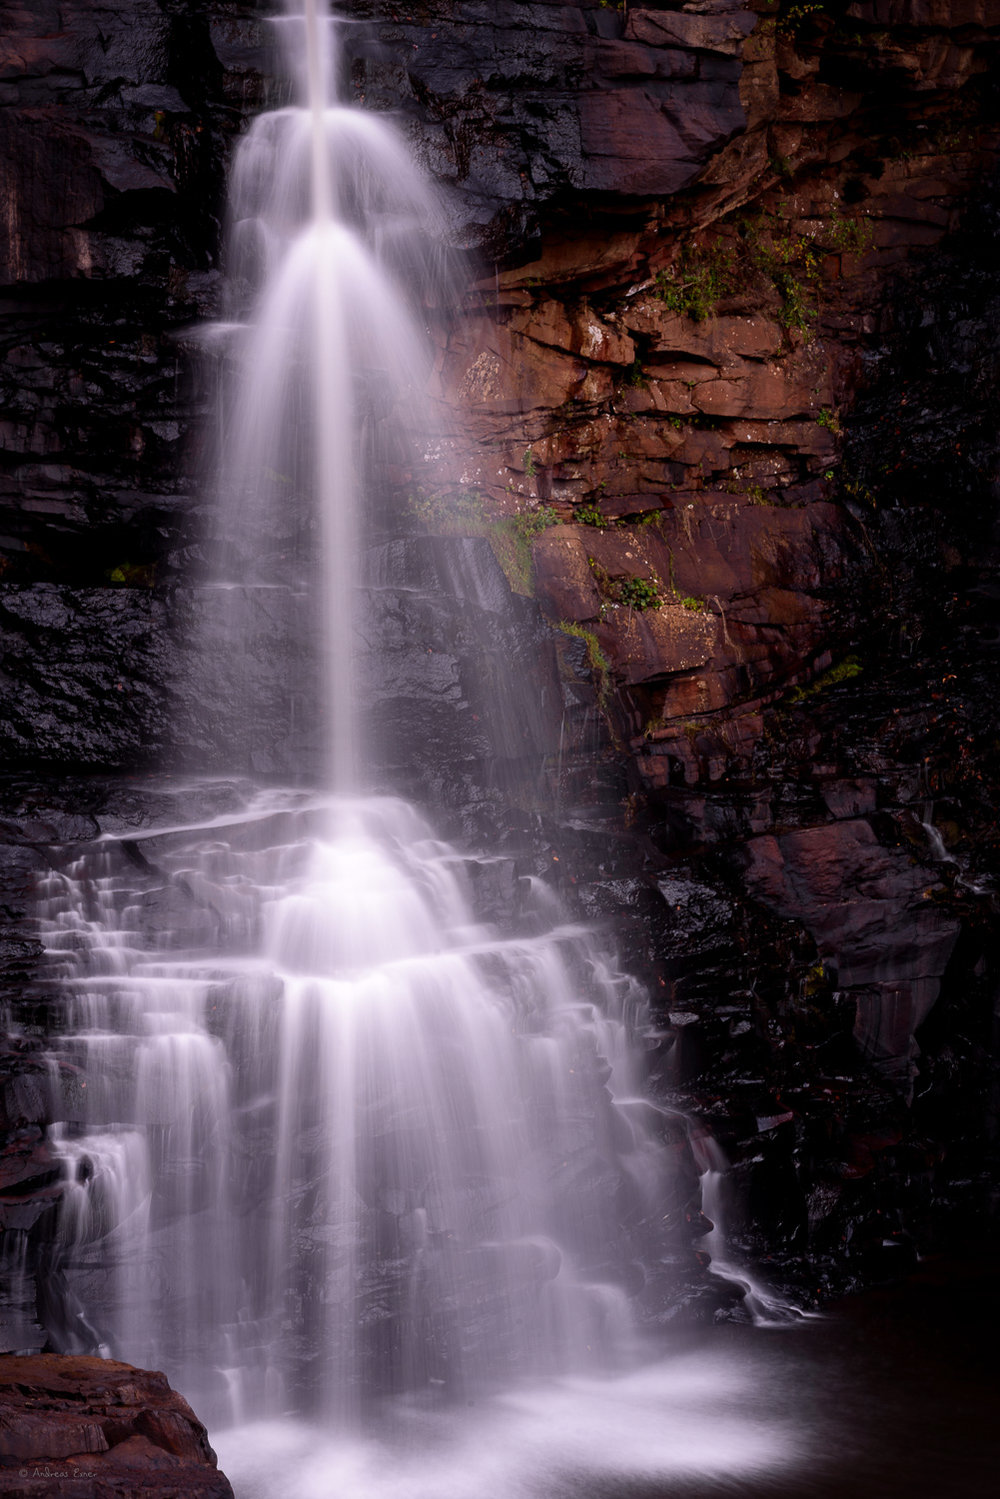 Blackwater Falls (partly), Blackwater Falls State Park, West Virginia